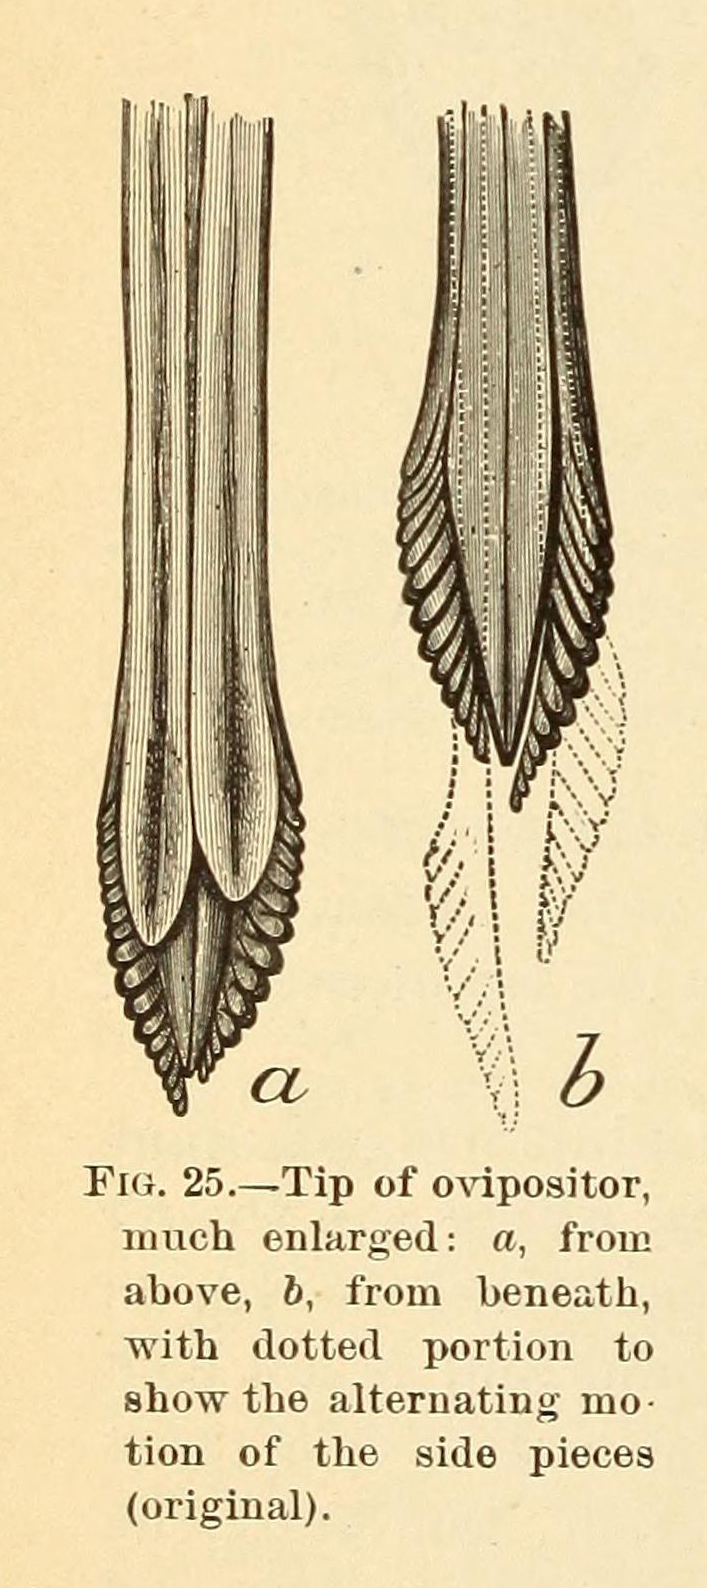 Black and white drawing of a close-up of the ovipositor of a female cicada.